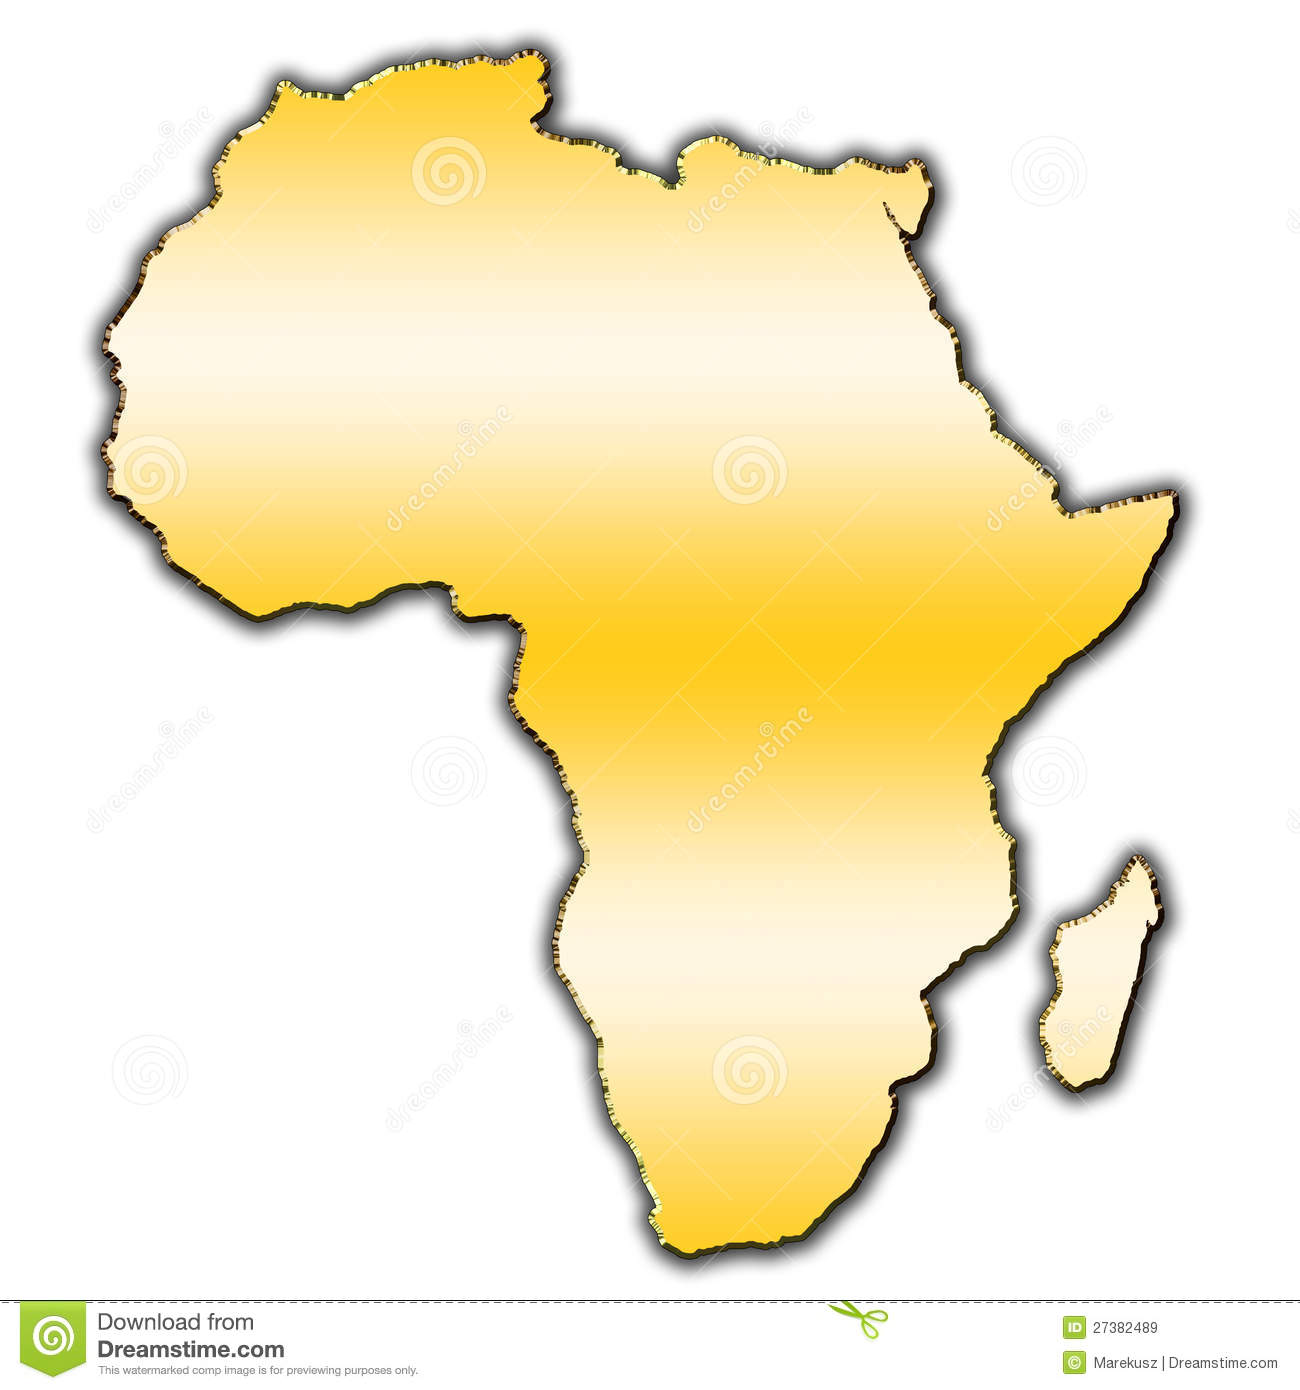 More similar stock images of ` Africa outline map `